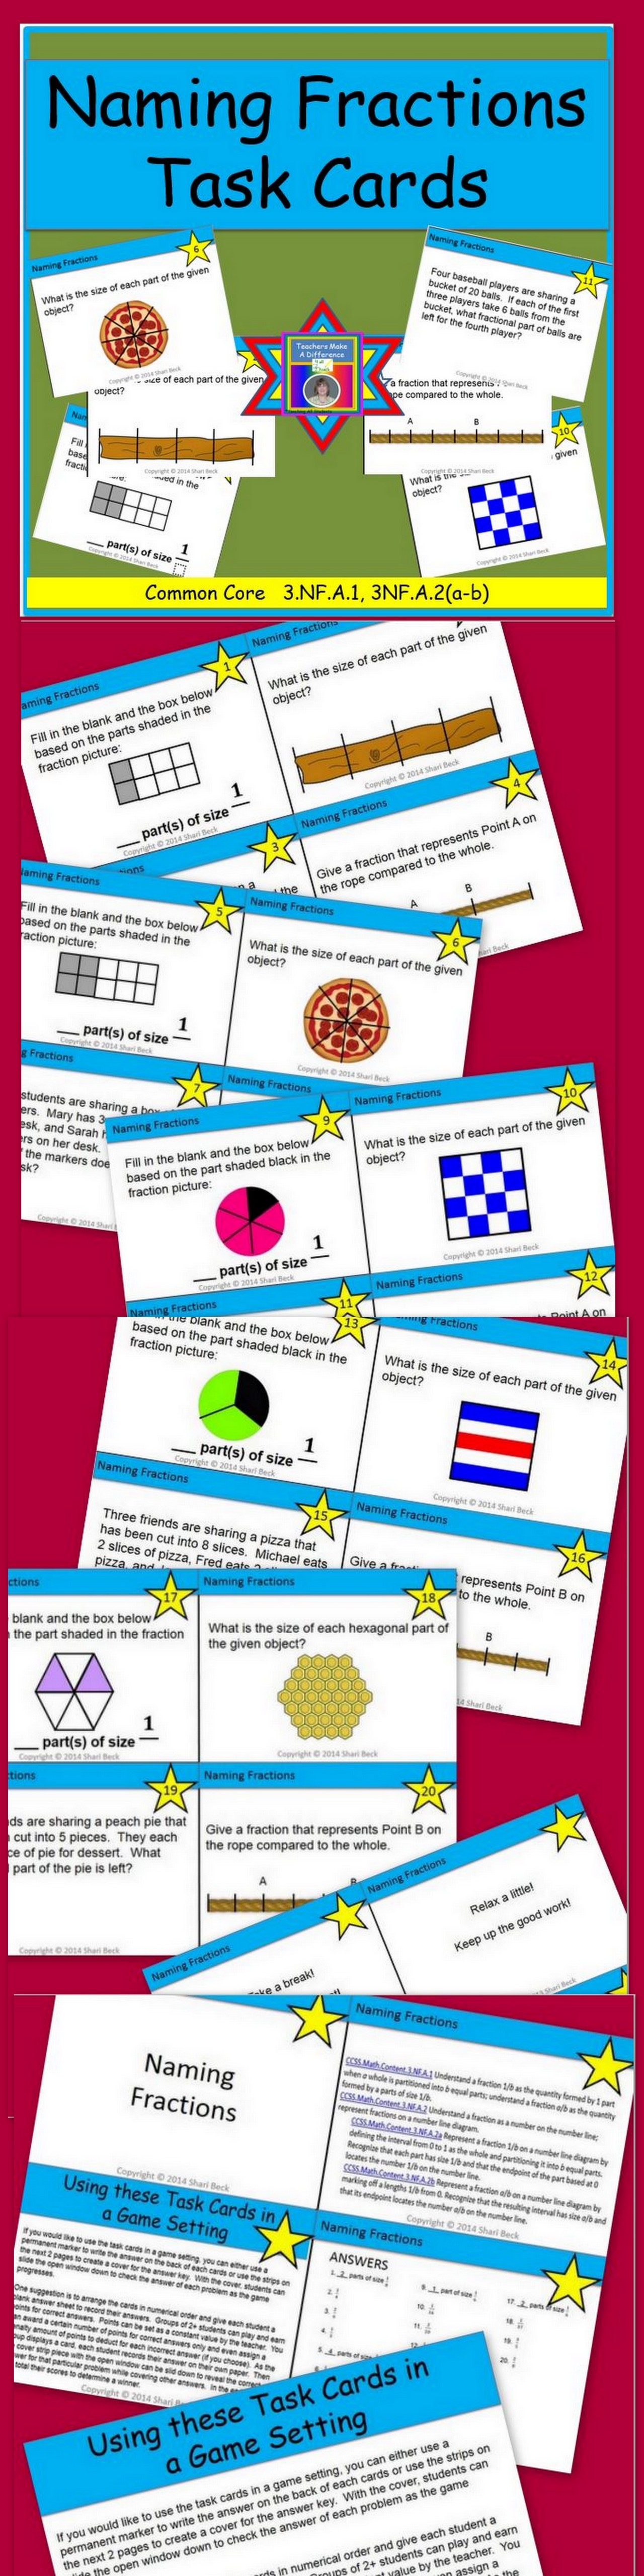 Naming Fractions Task Cards   Common core standards, Core standards ...